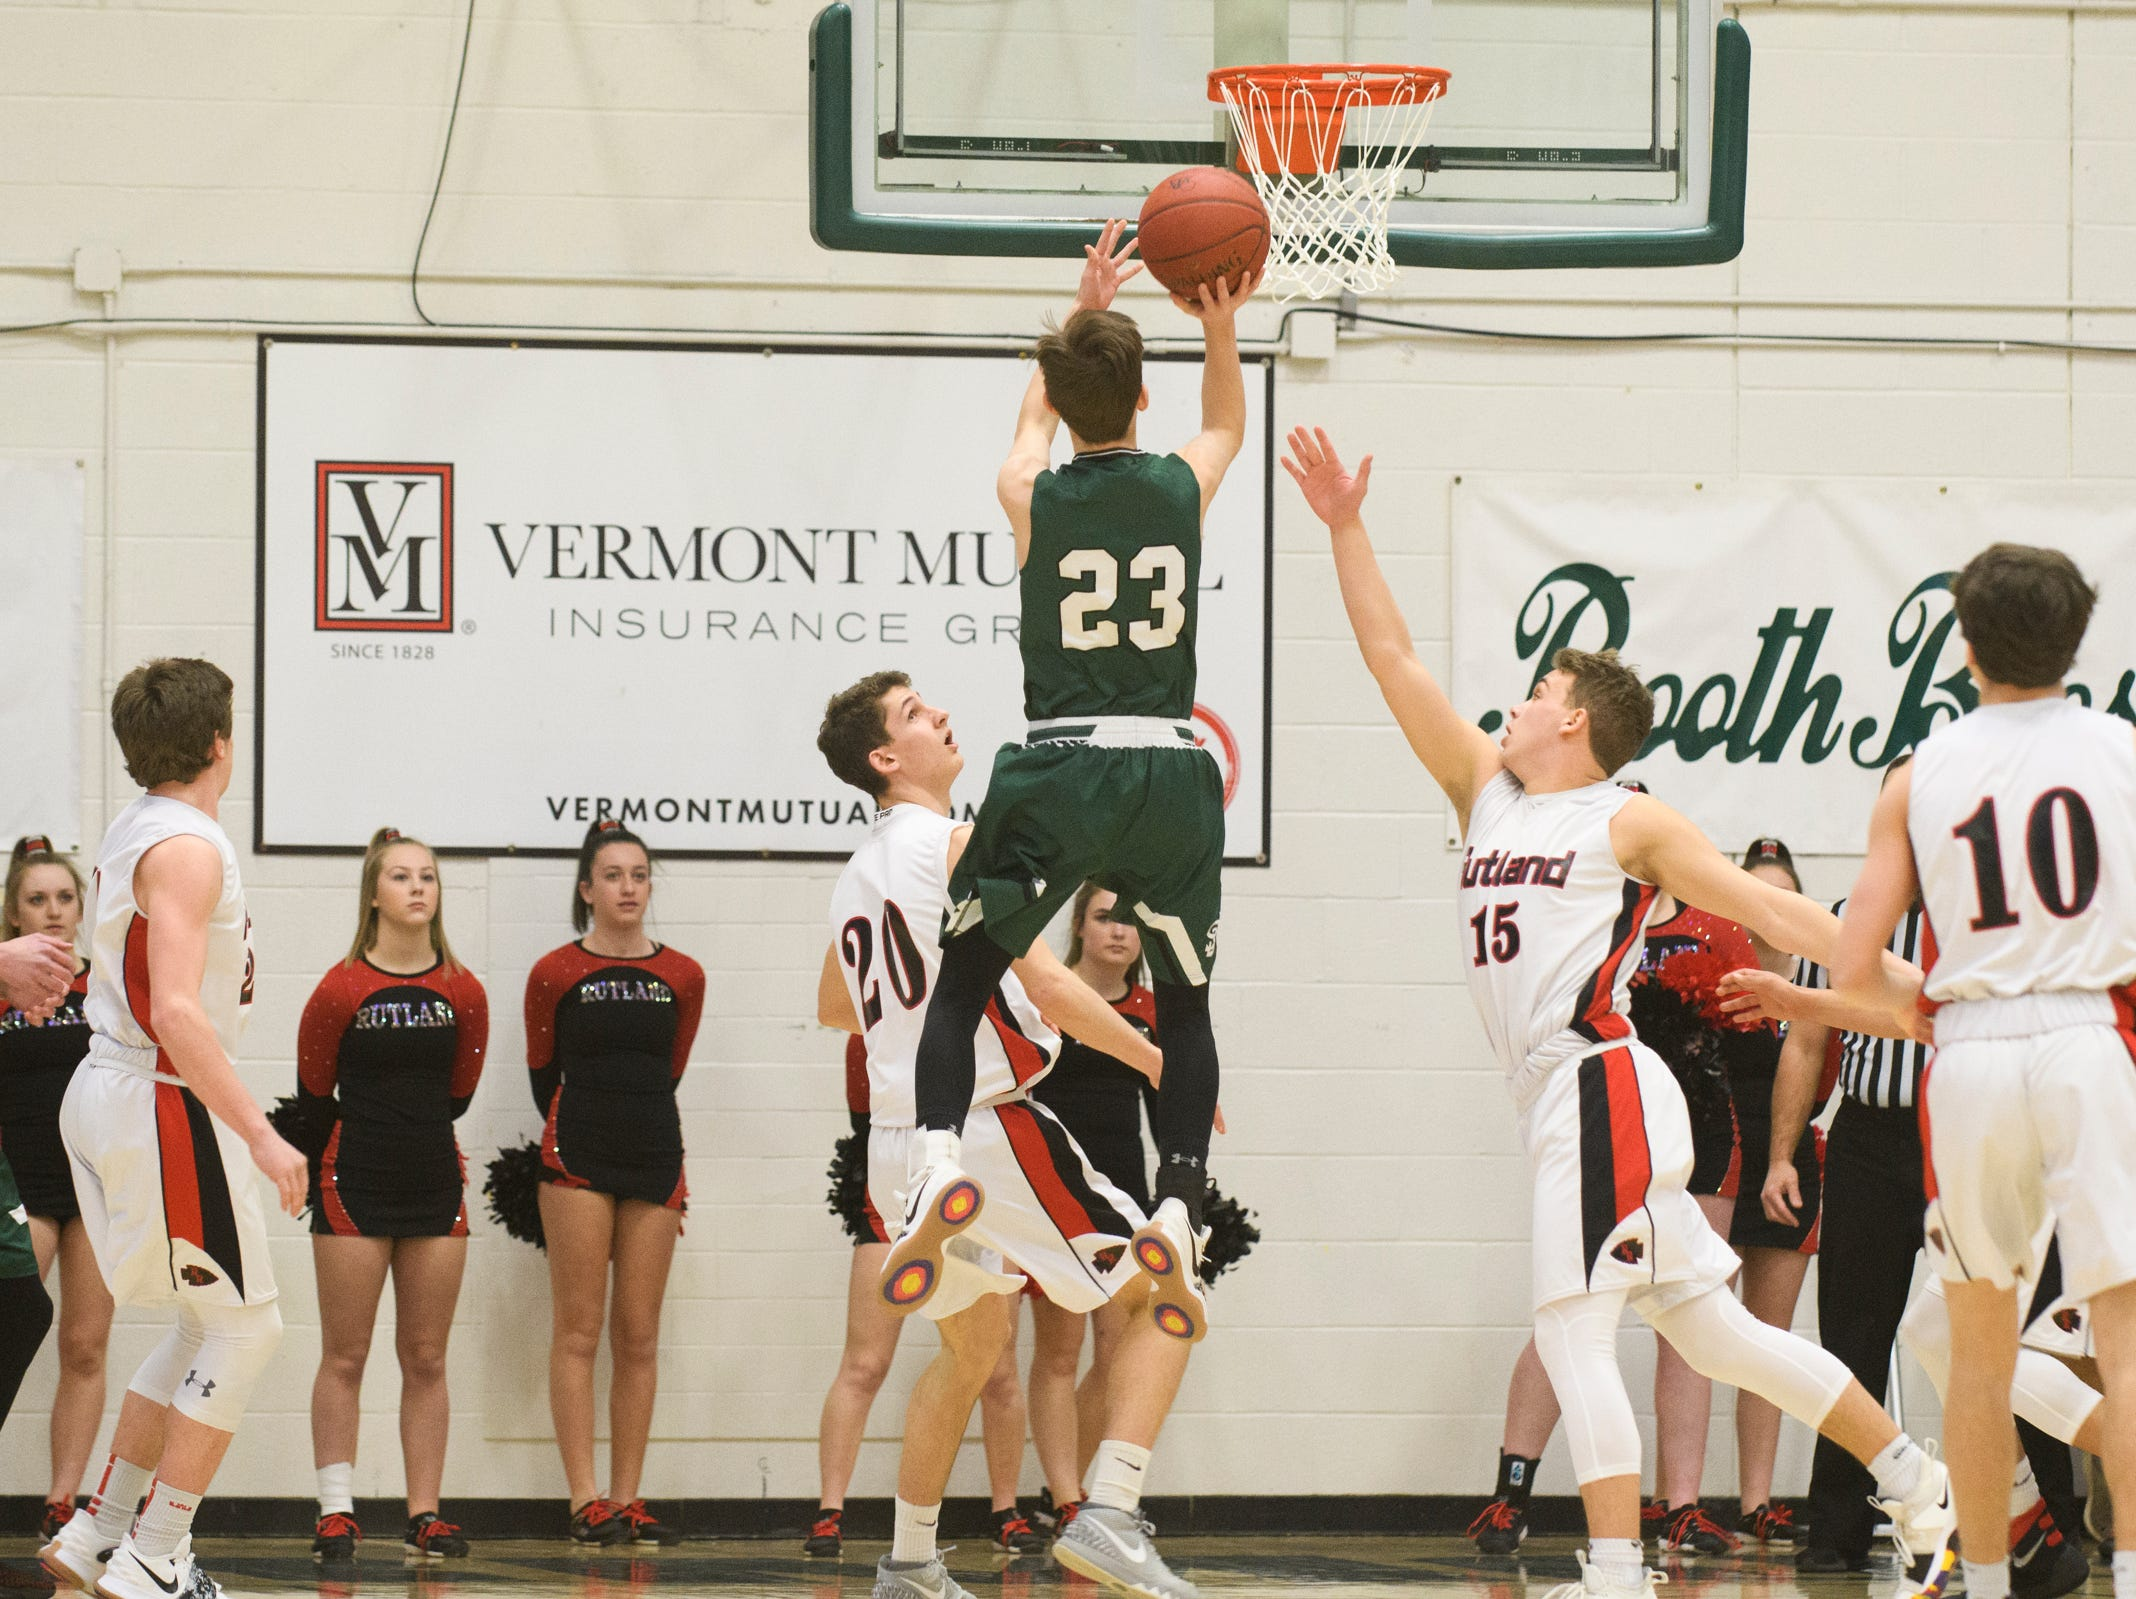 St. Johnsbury's Logan Wendell (23) leaps to take a shot during the DI boys basketball championship game between the St. Johnsbury Hilltoppers and the Rutland Raiders at Patrick Gym on Sunday afternoon March 17, 2019 in Burlington, Vermont.